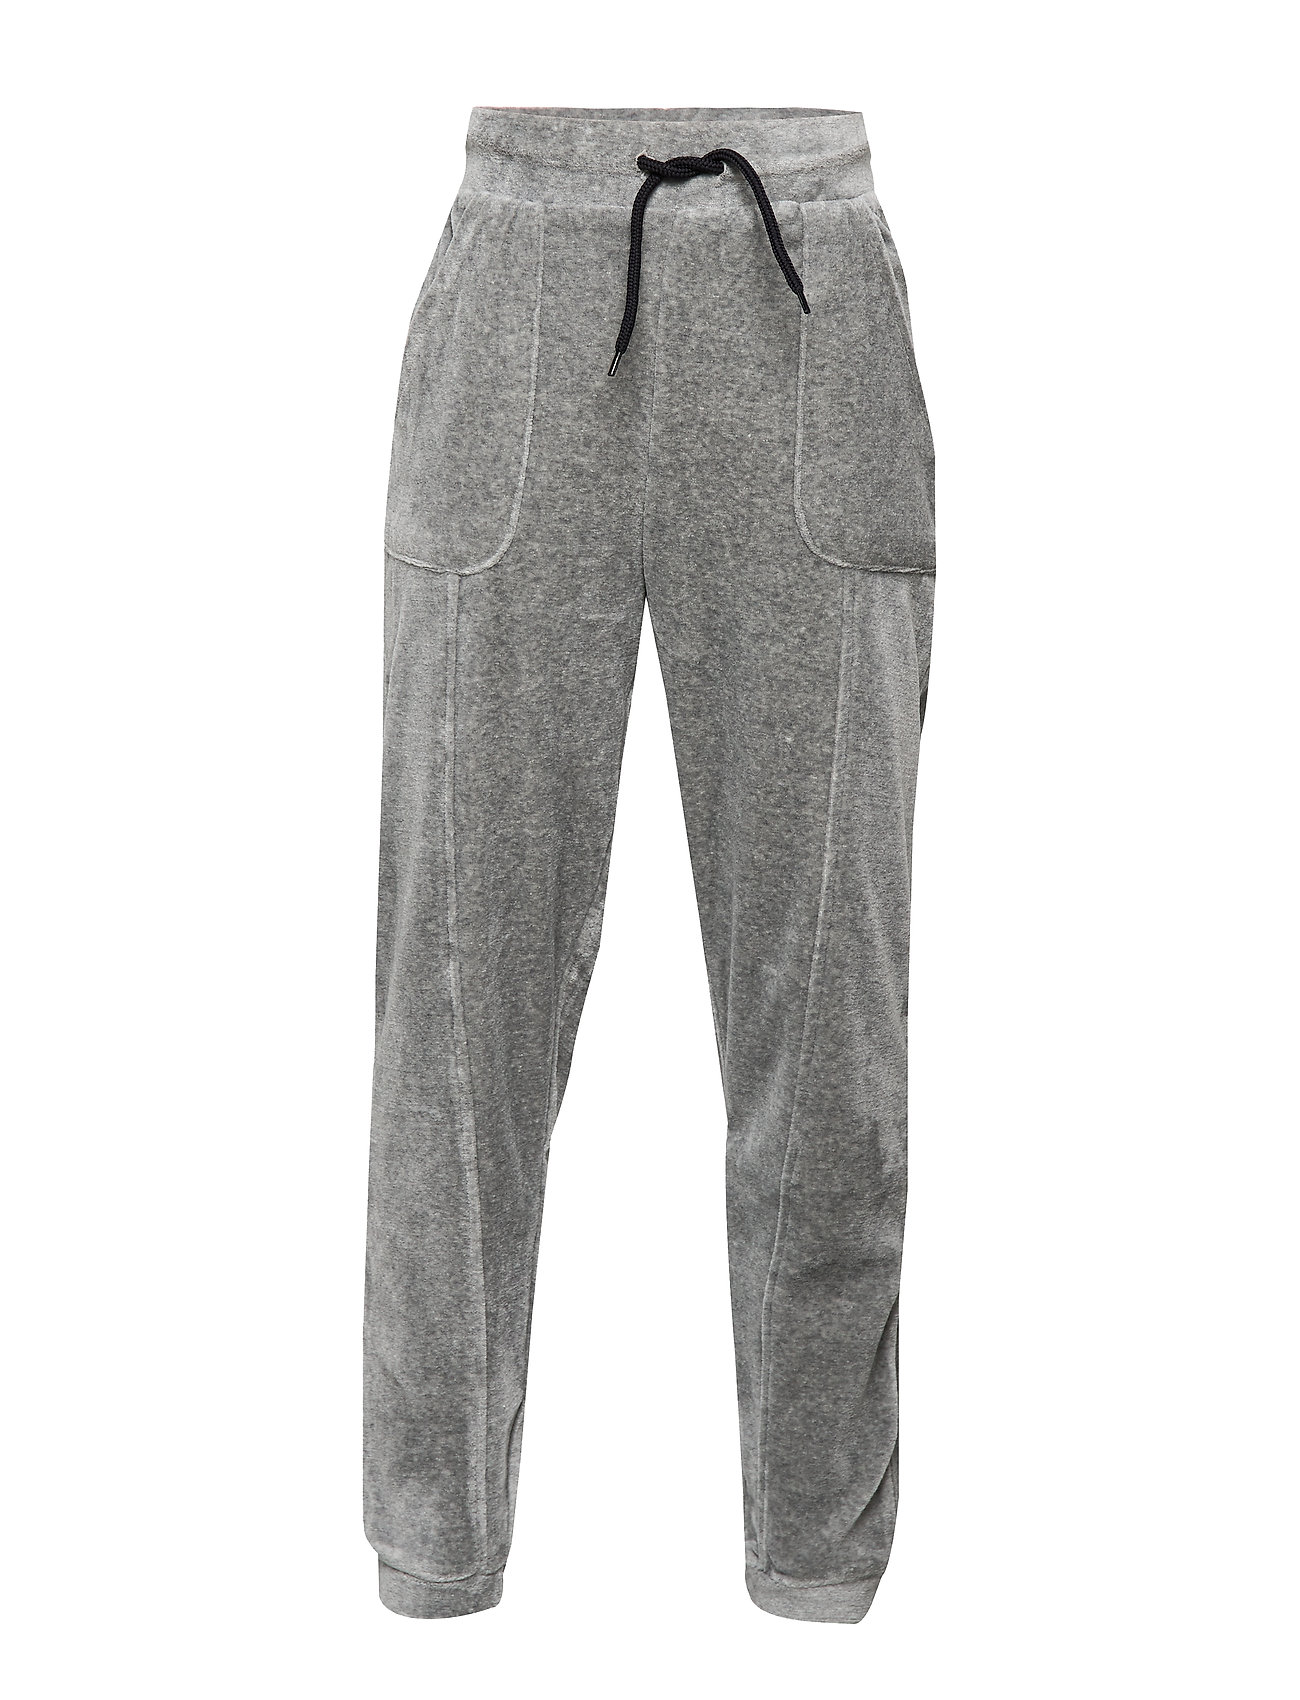 Mini A Ture Lawrence Pants, K - LIGHT GREY MELANGE